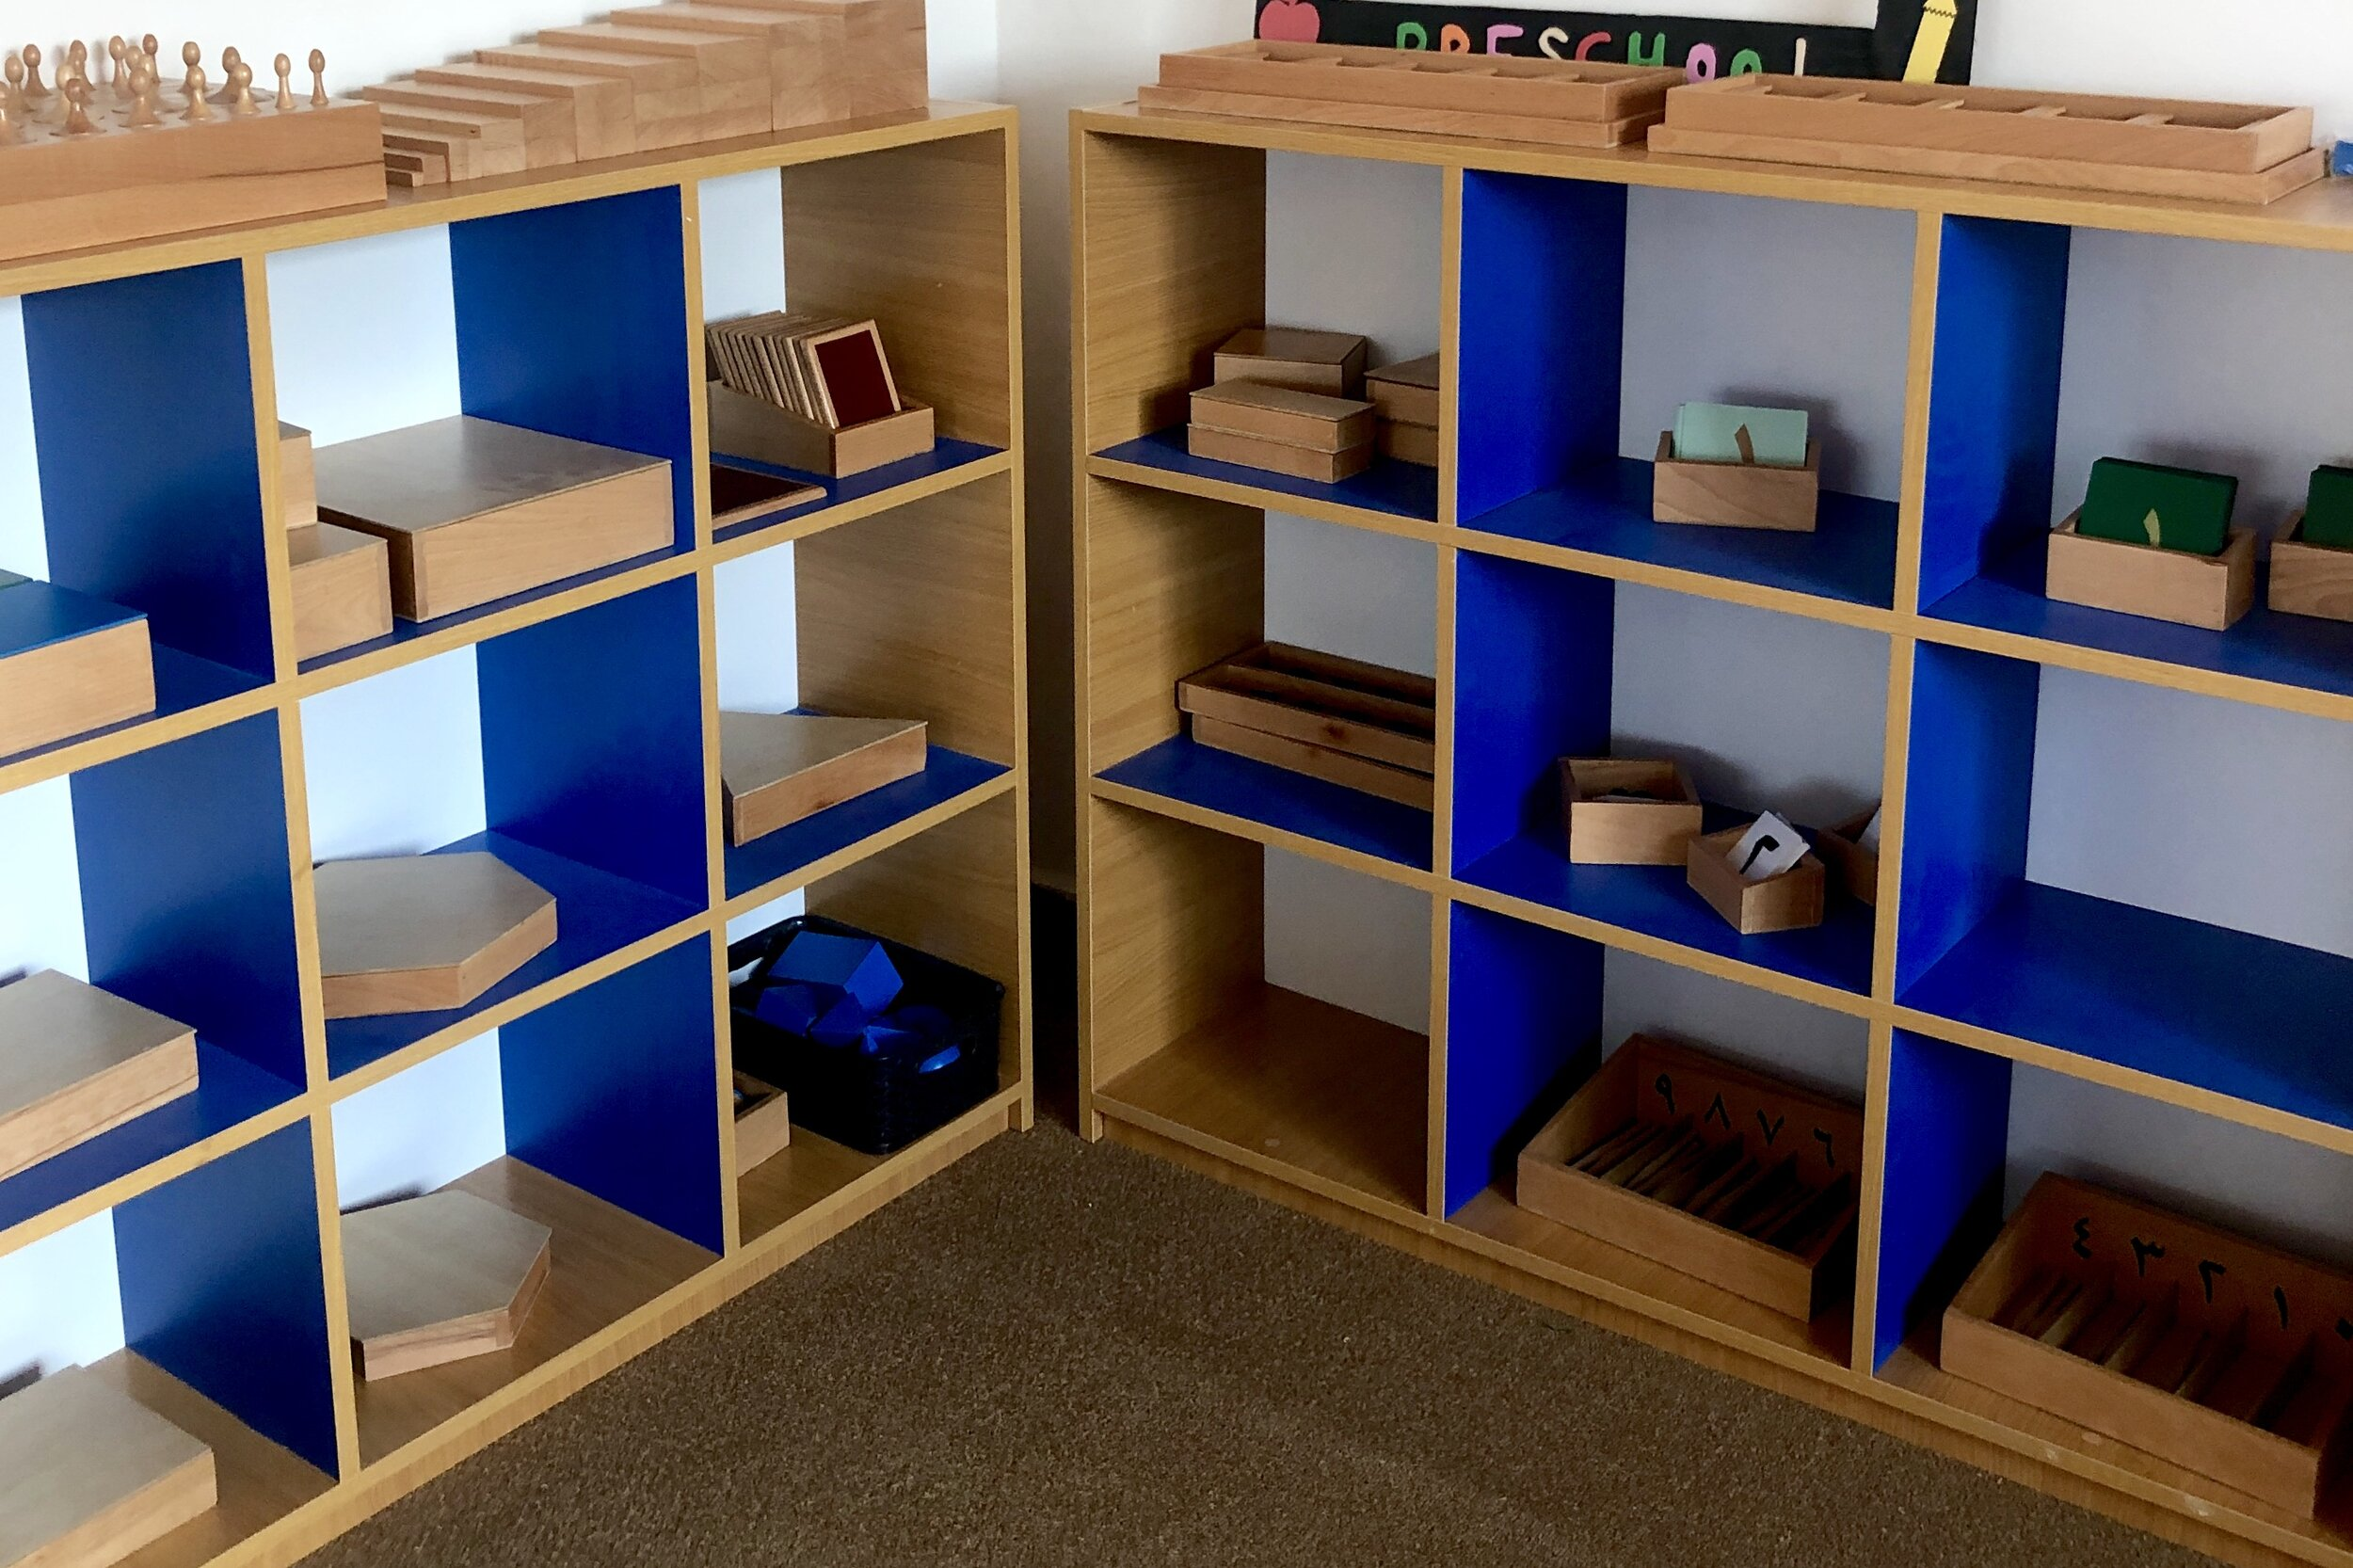 Montessori Materials unpacked & ready!